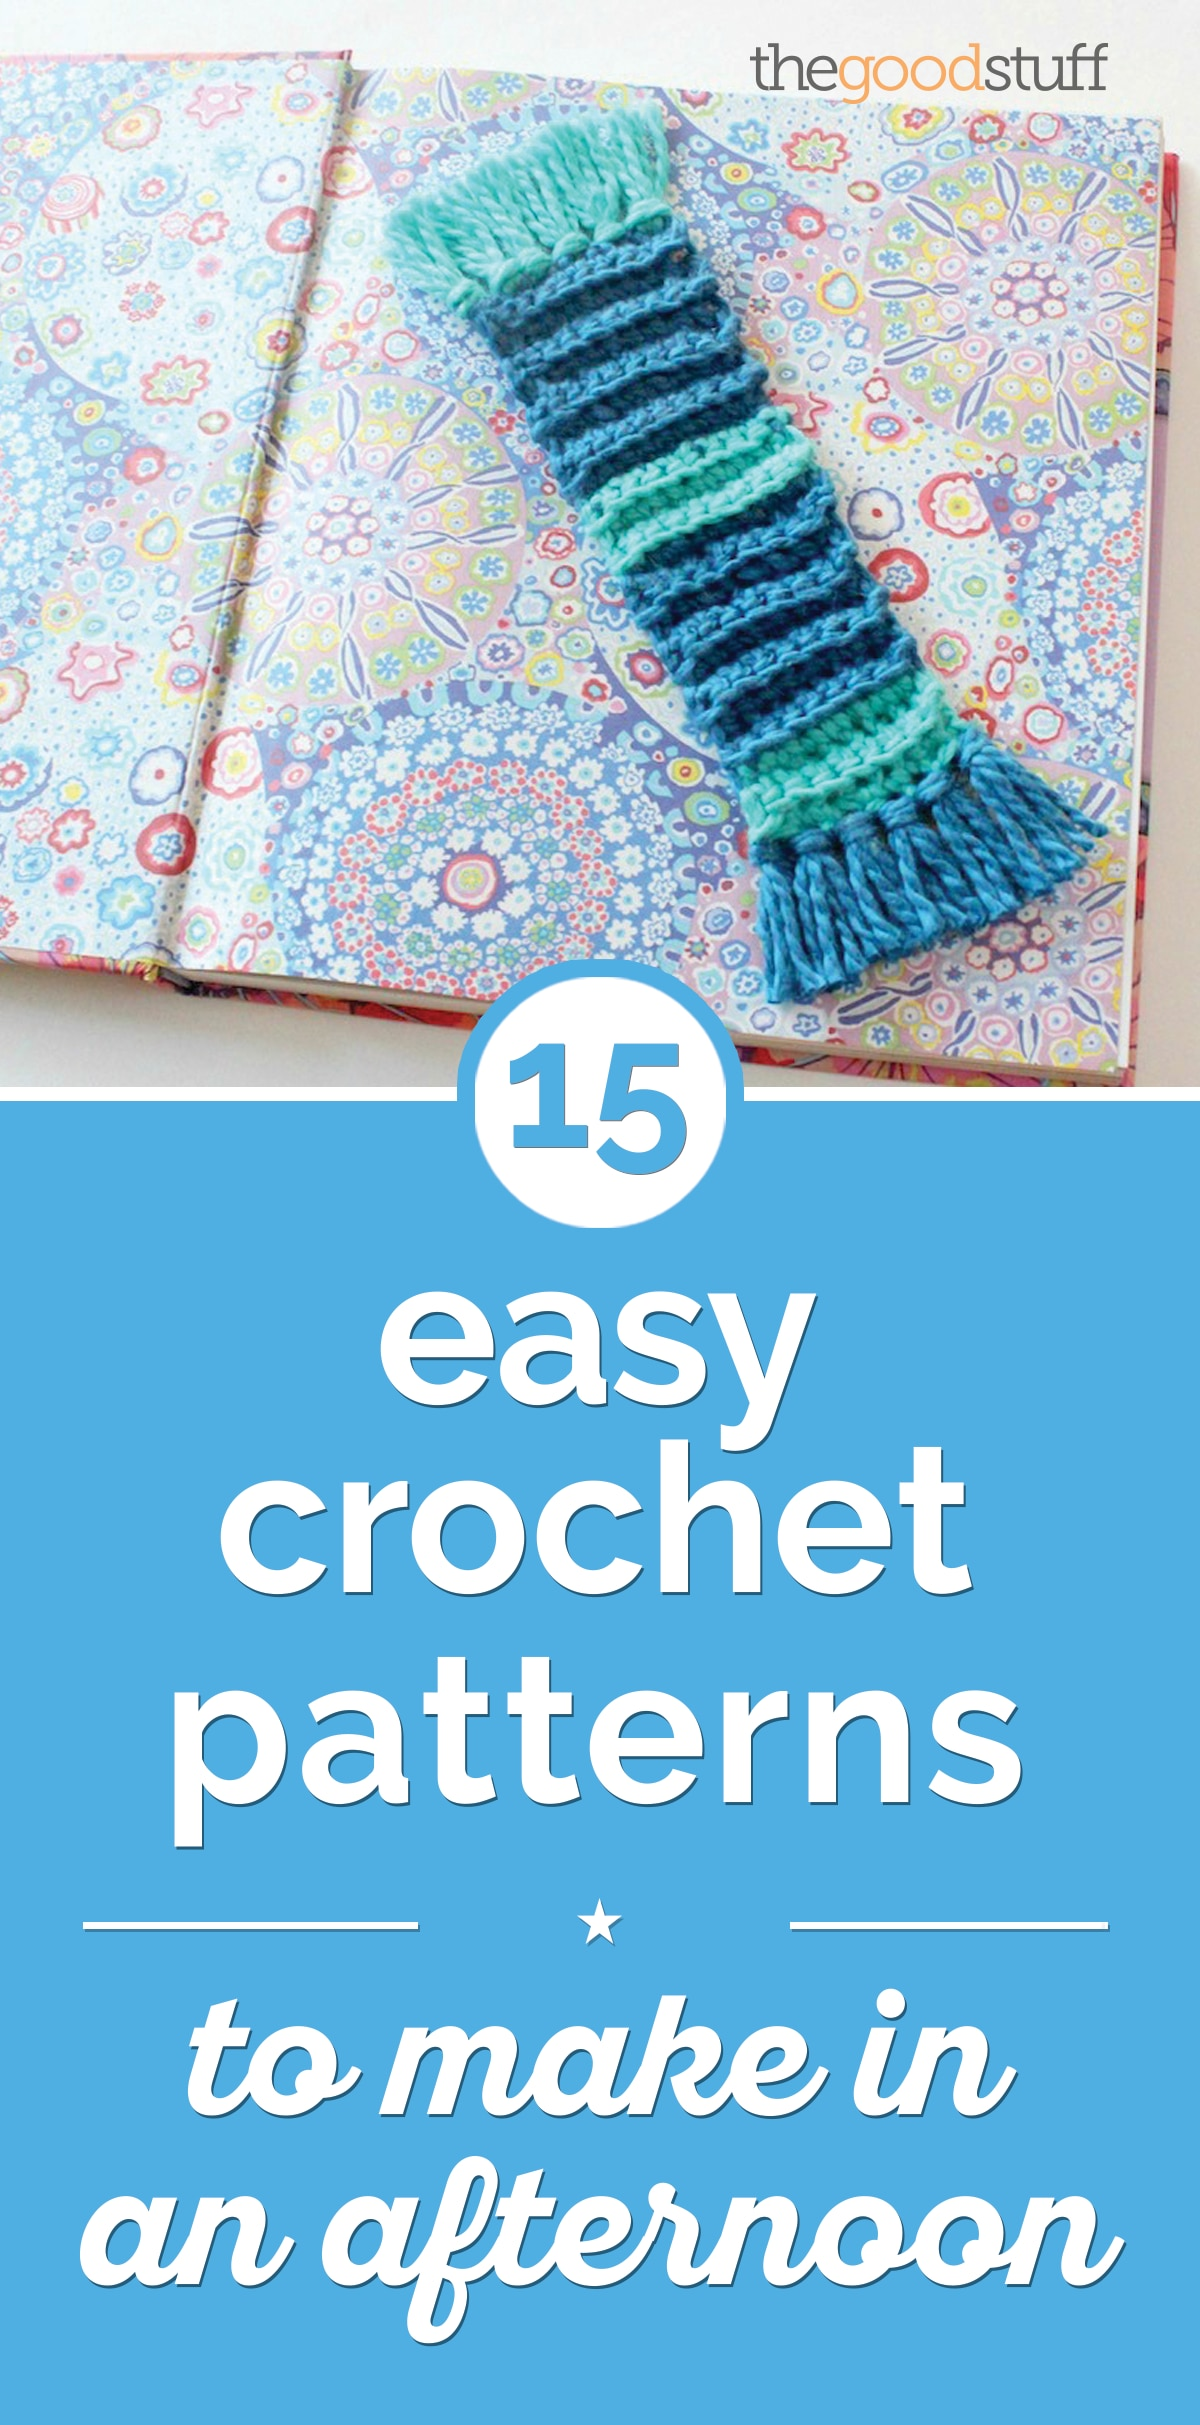 15 Easy Crochet Patterns to Make in an Afternoon ...